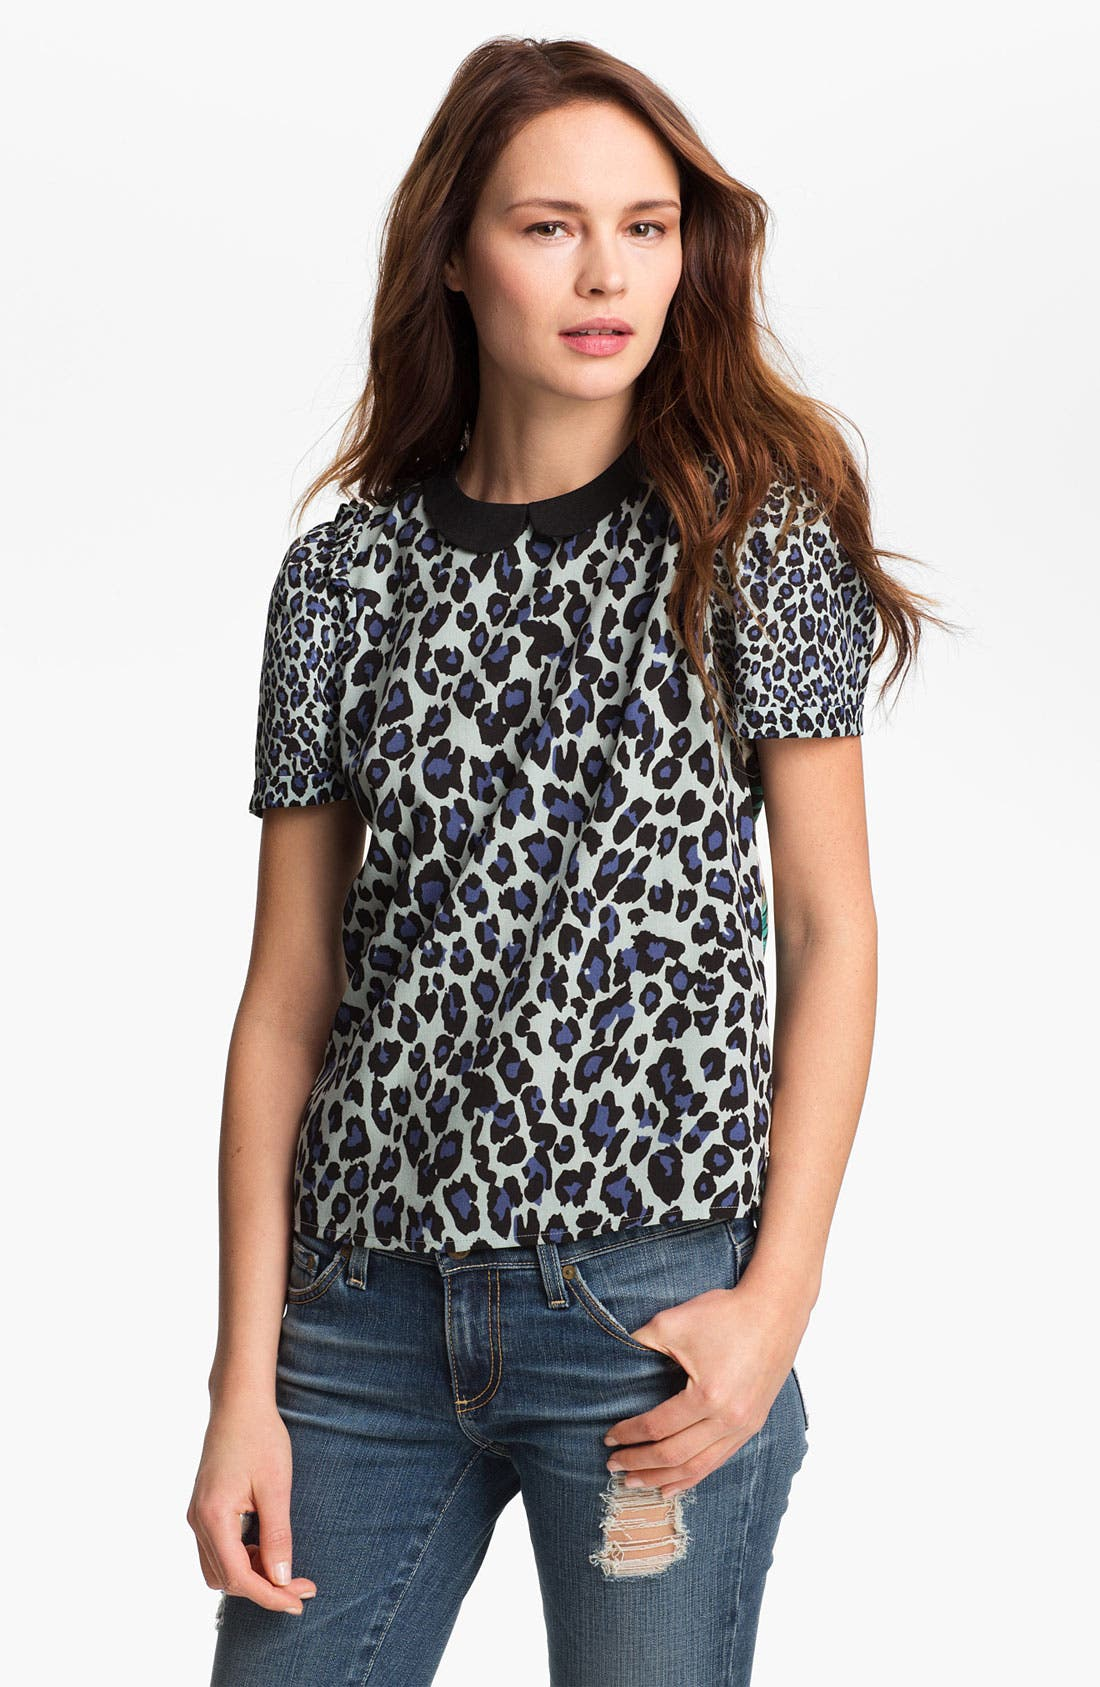 Main Image - Maison Scotch Peter Pan Collar Mix Print Top